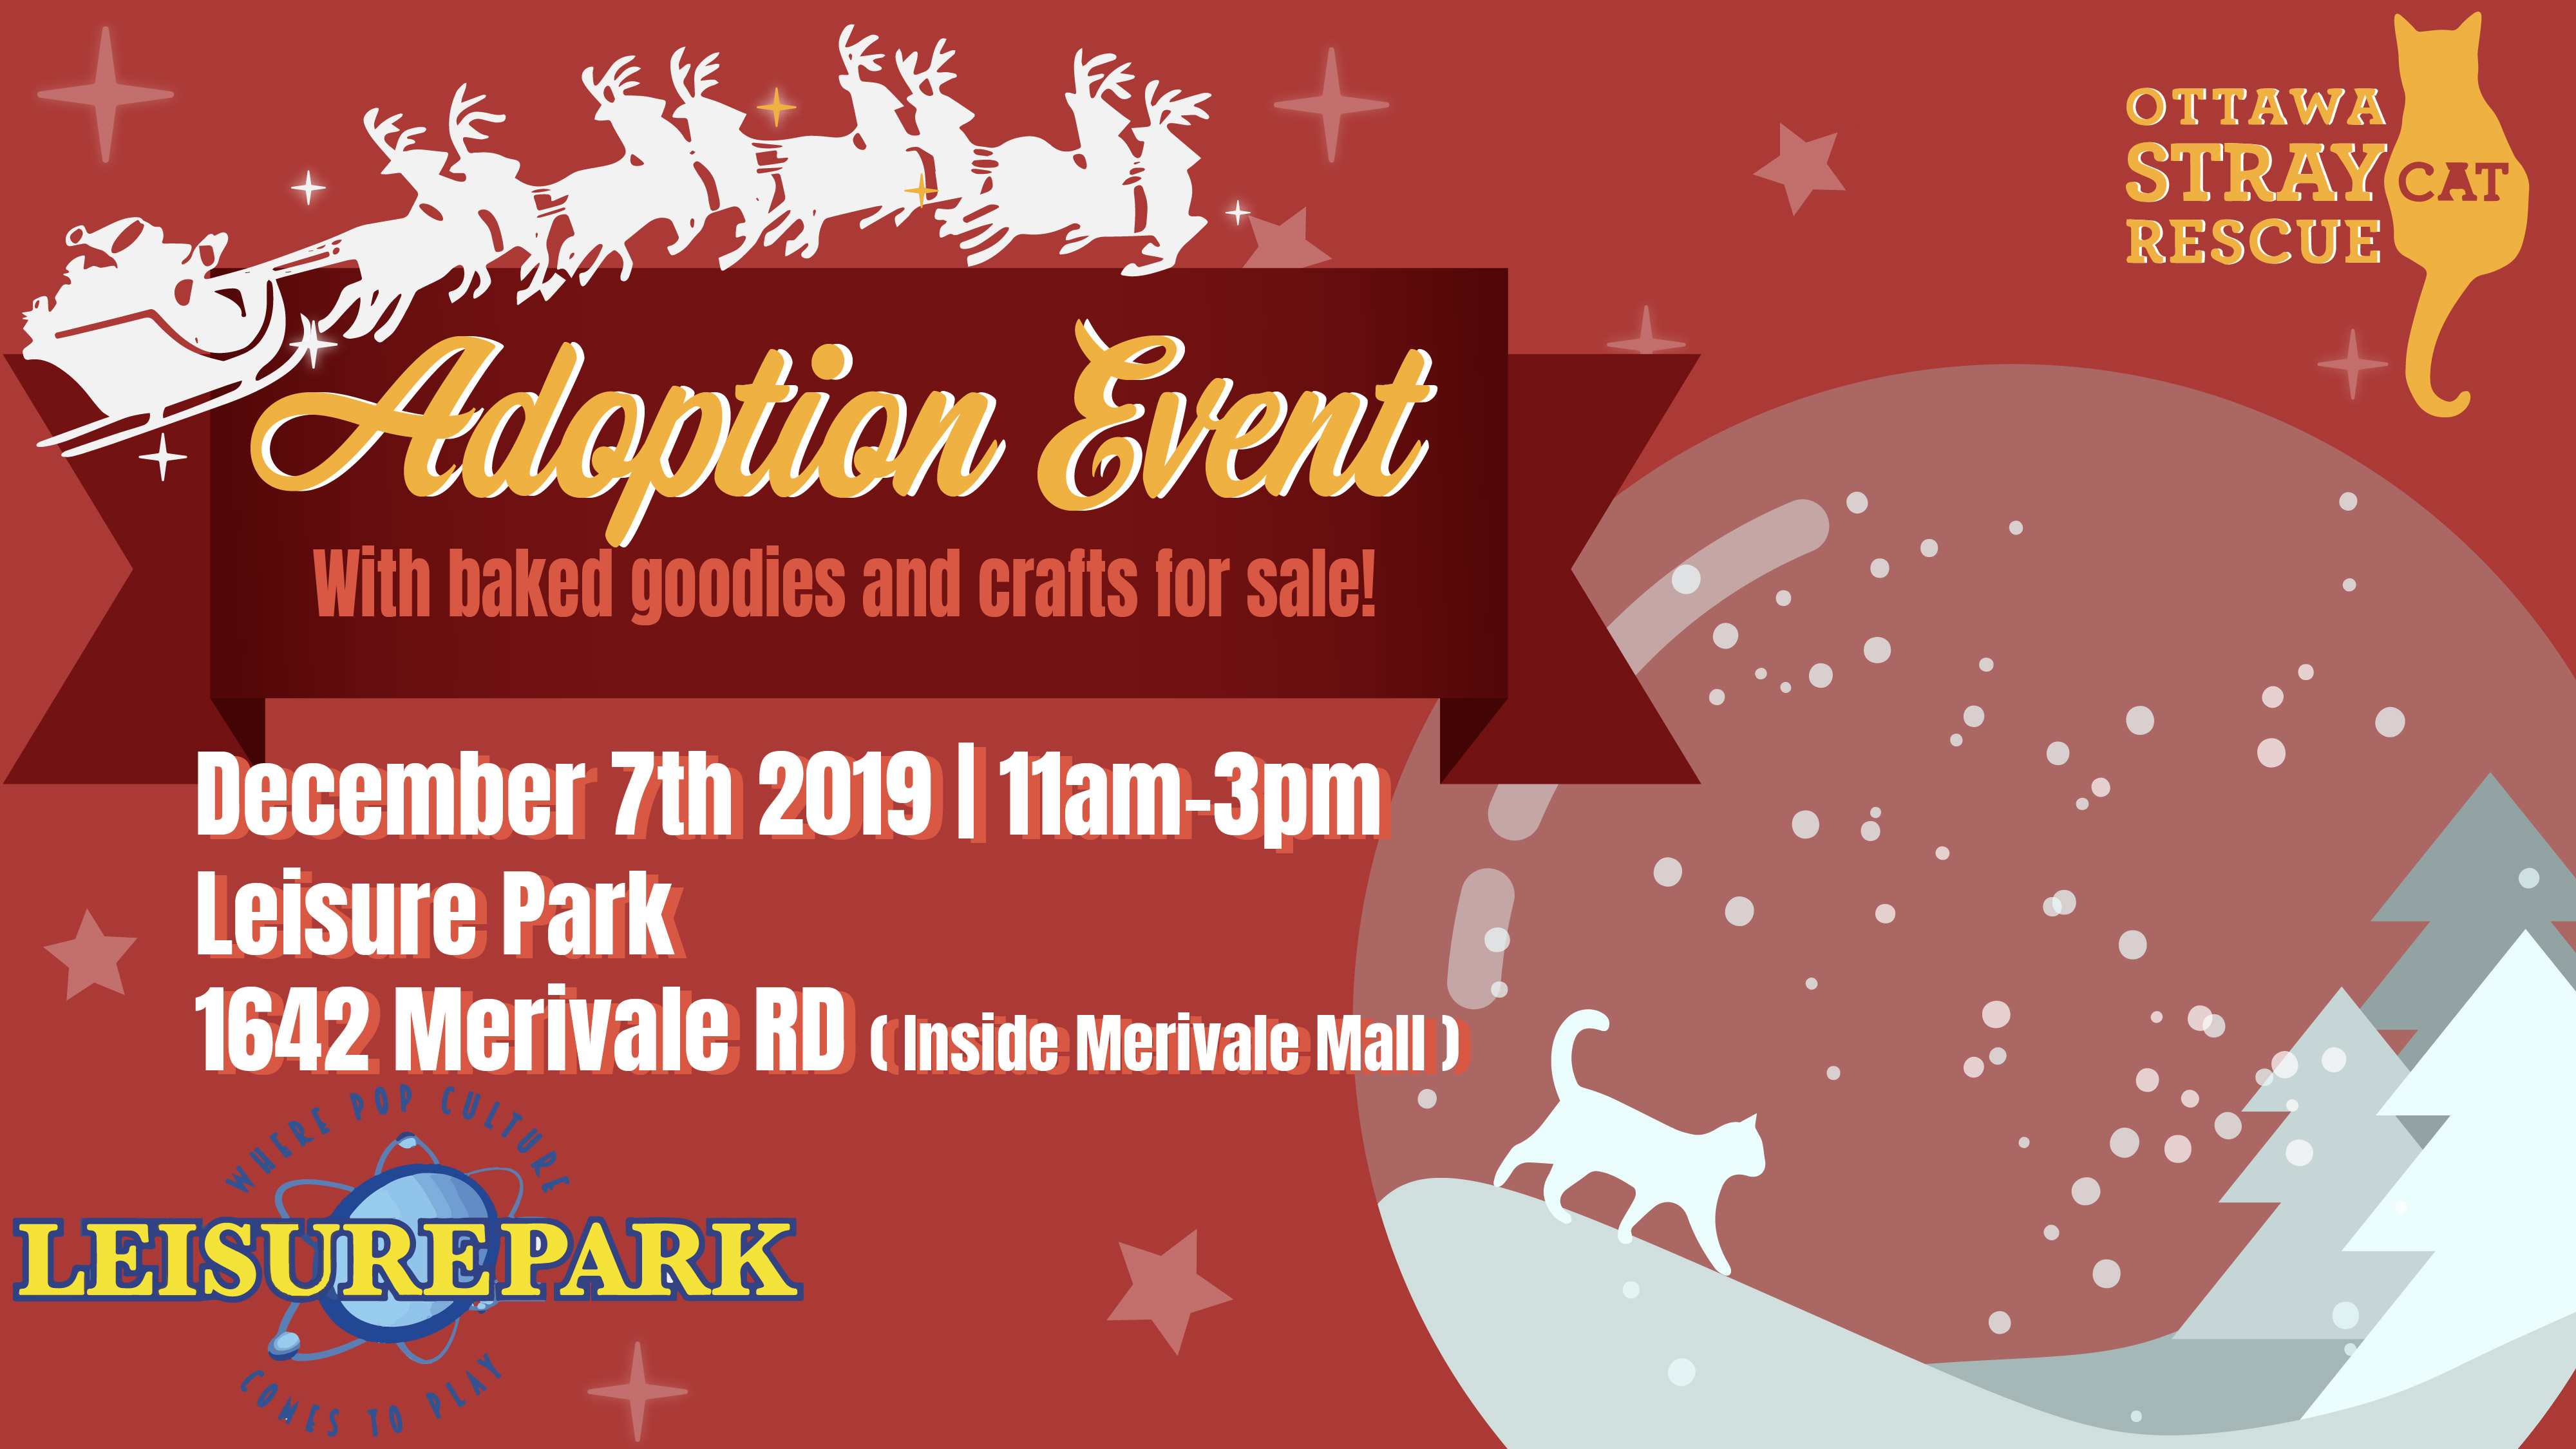 Ottawa Stray Cat Rescue Holiday Adoption Event